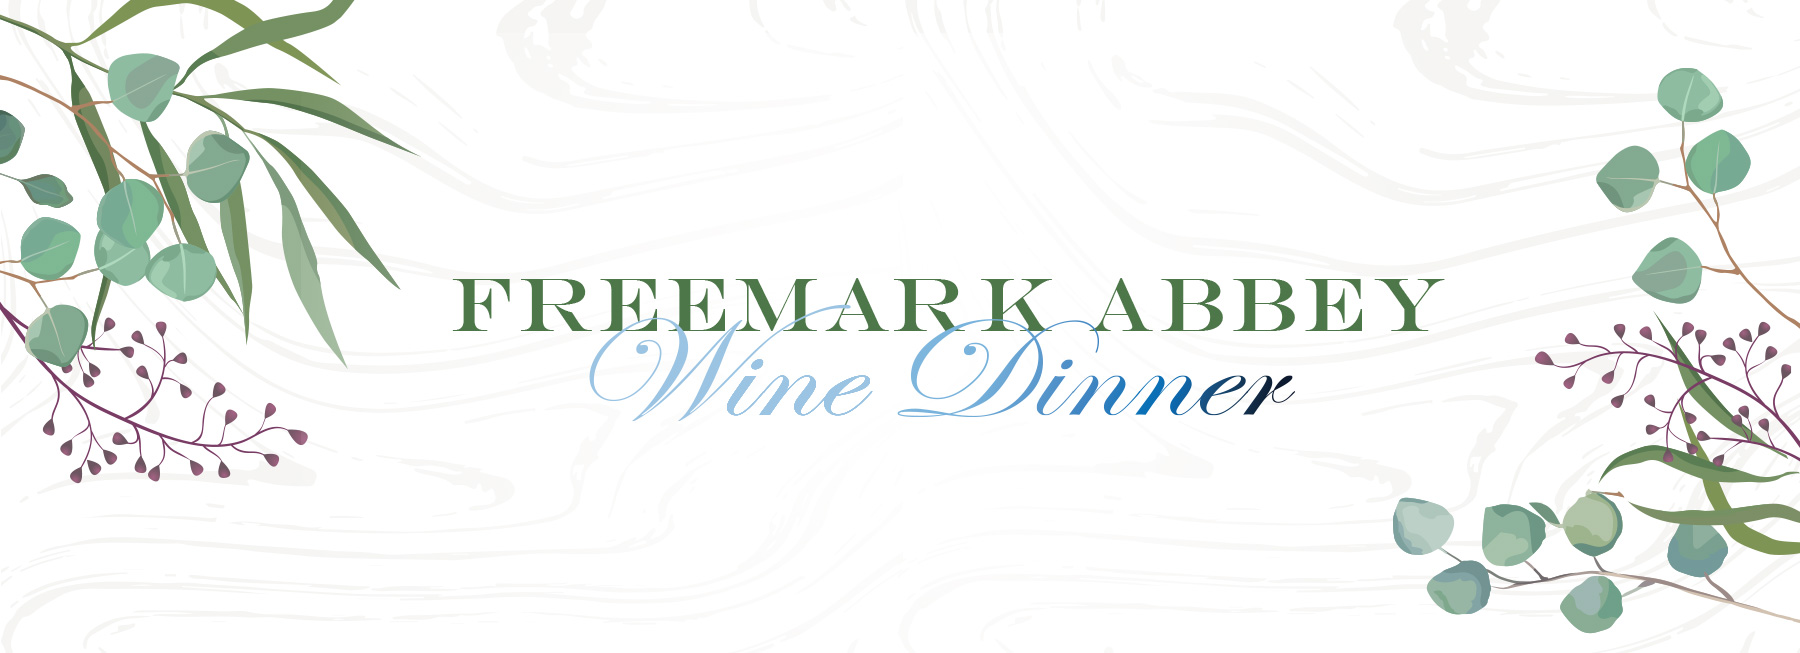 Freemark Abbey Wine Dinner